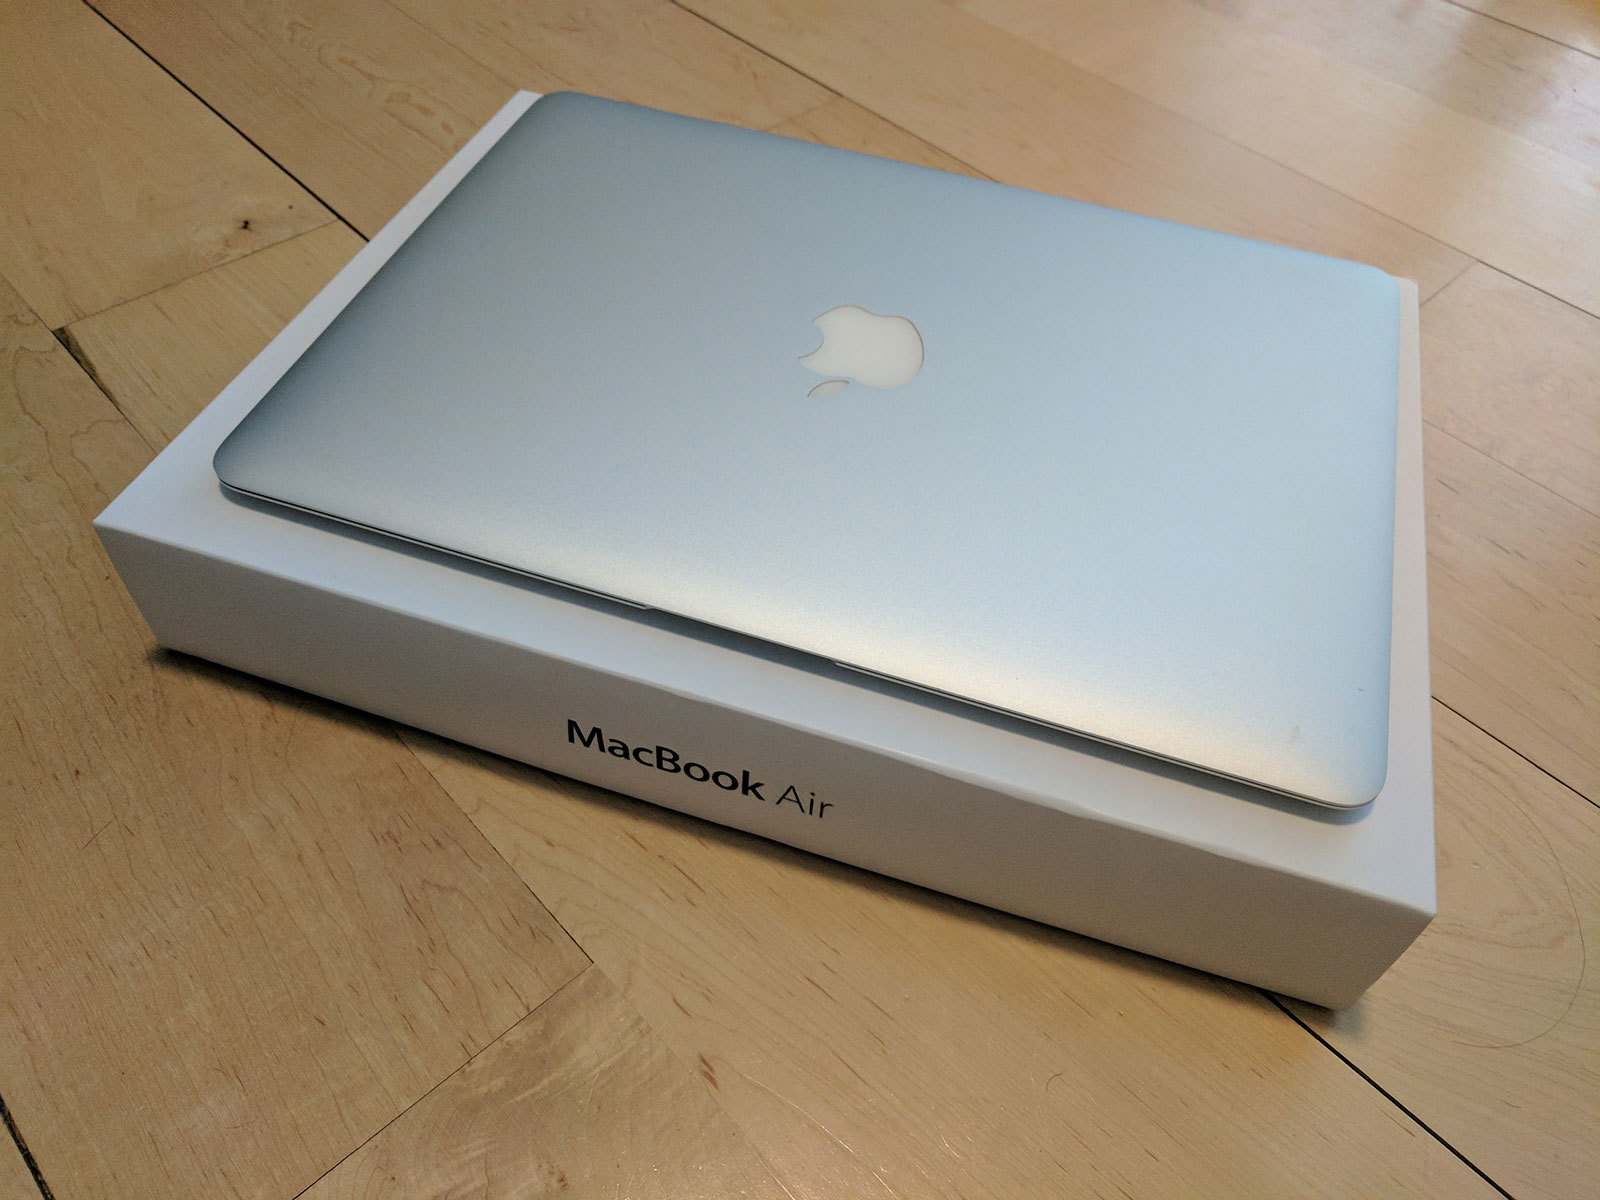 sold macbook air 13 mid 2012 i7 8gb 256gb ssd fm forums. Black Bedroom Furniture Sets. Home Design Ideas